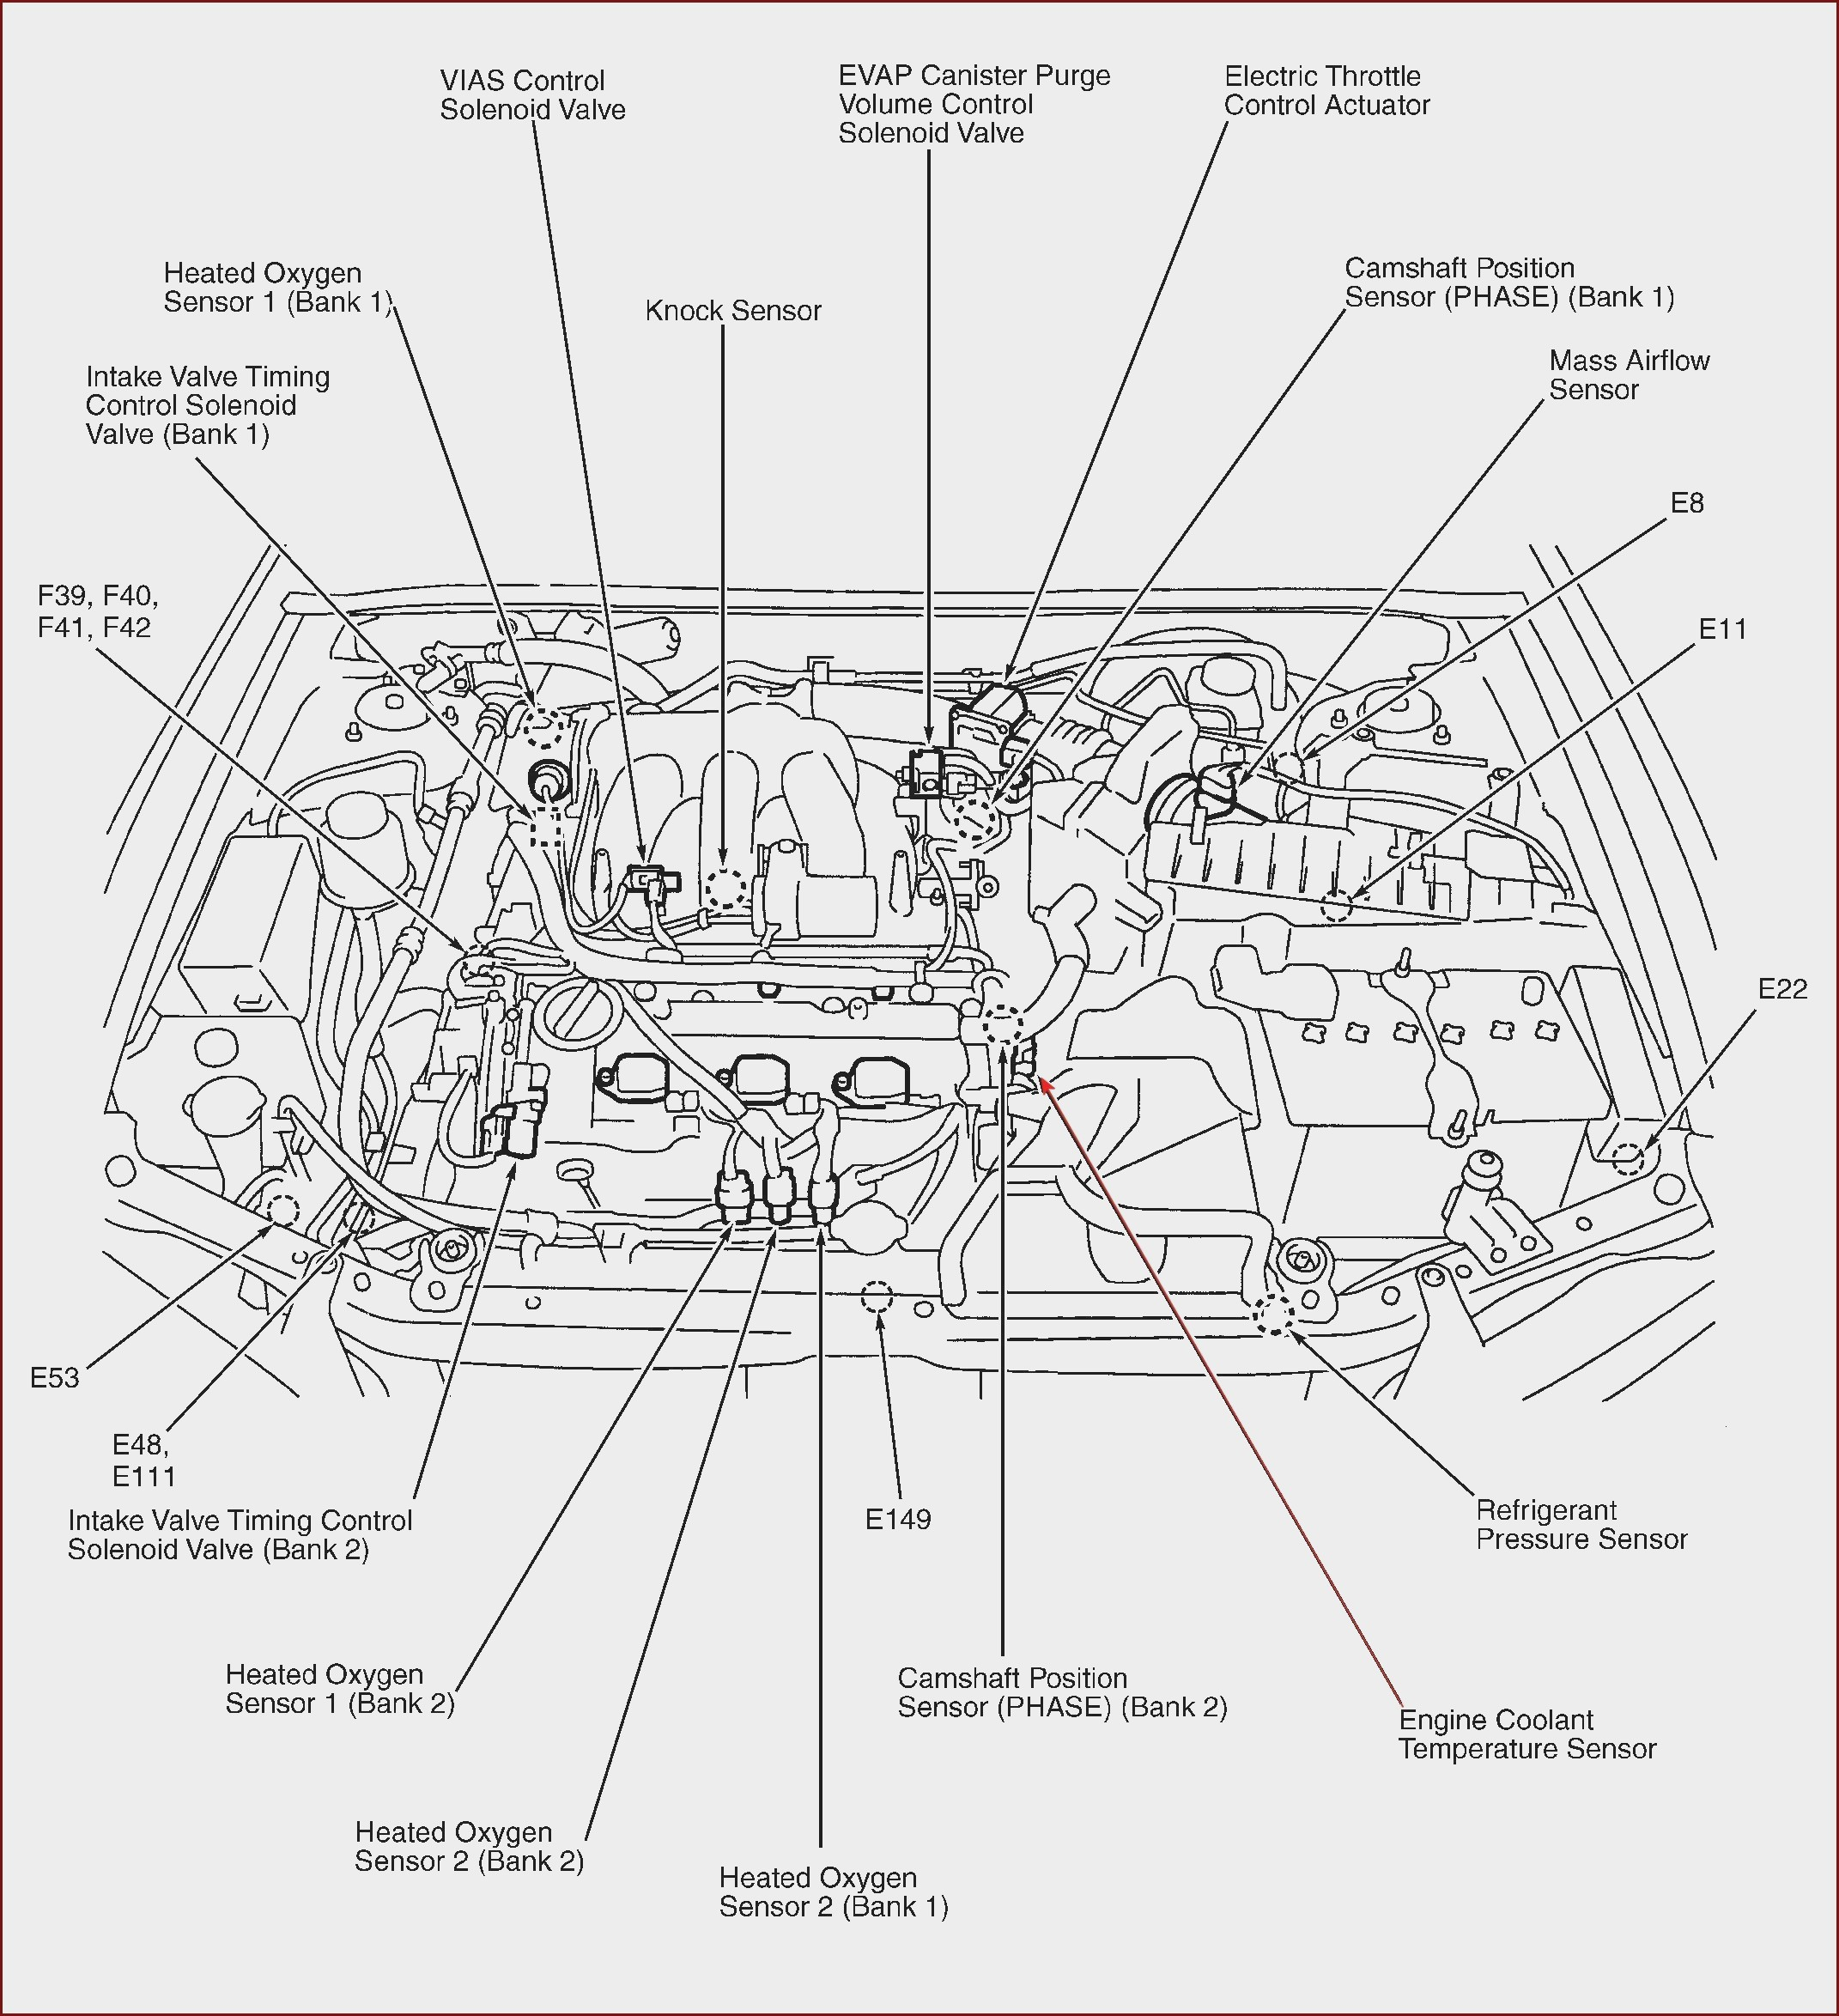 2005 Nissan Xterra Engine Diagram 1995 Nissan Pathfinder Starter Wiring Diagram at Manuals Library Of 2005 Nissan Xterra Engine Diagram 2002 Nissan Xterra Engine Diagram 2005 Nissan Pathfinder